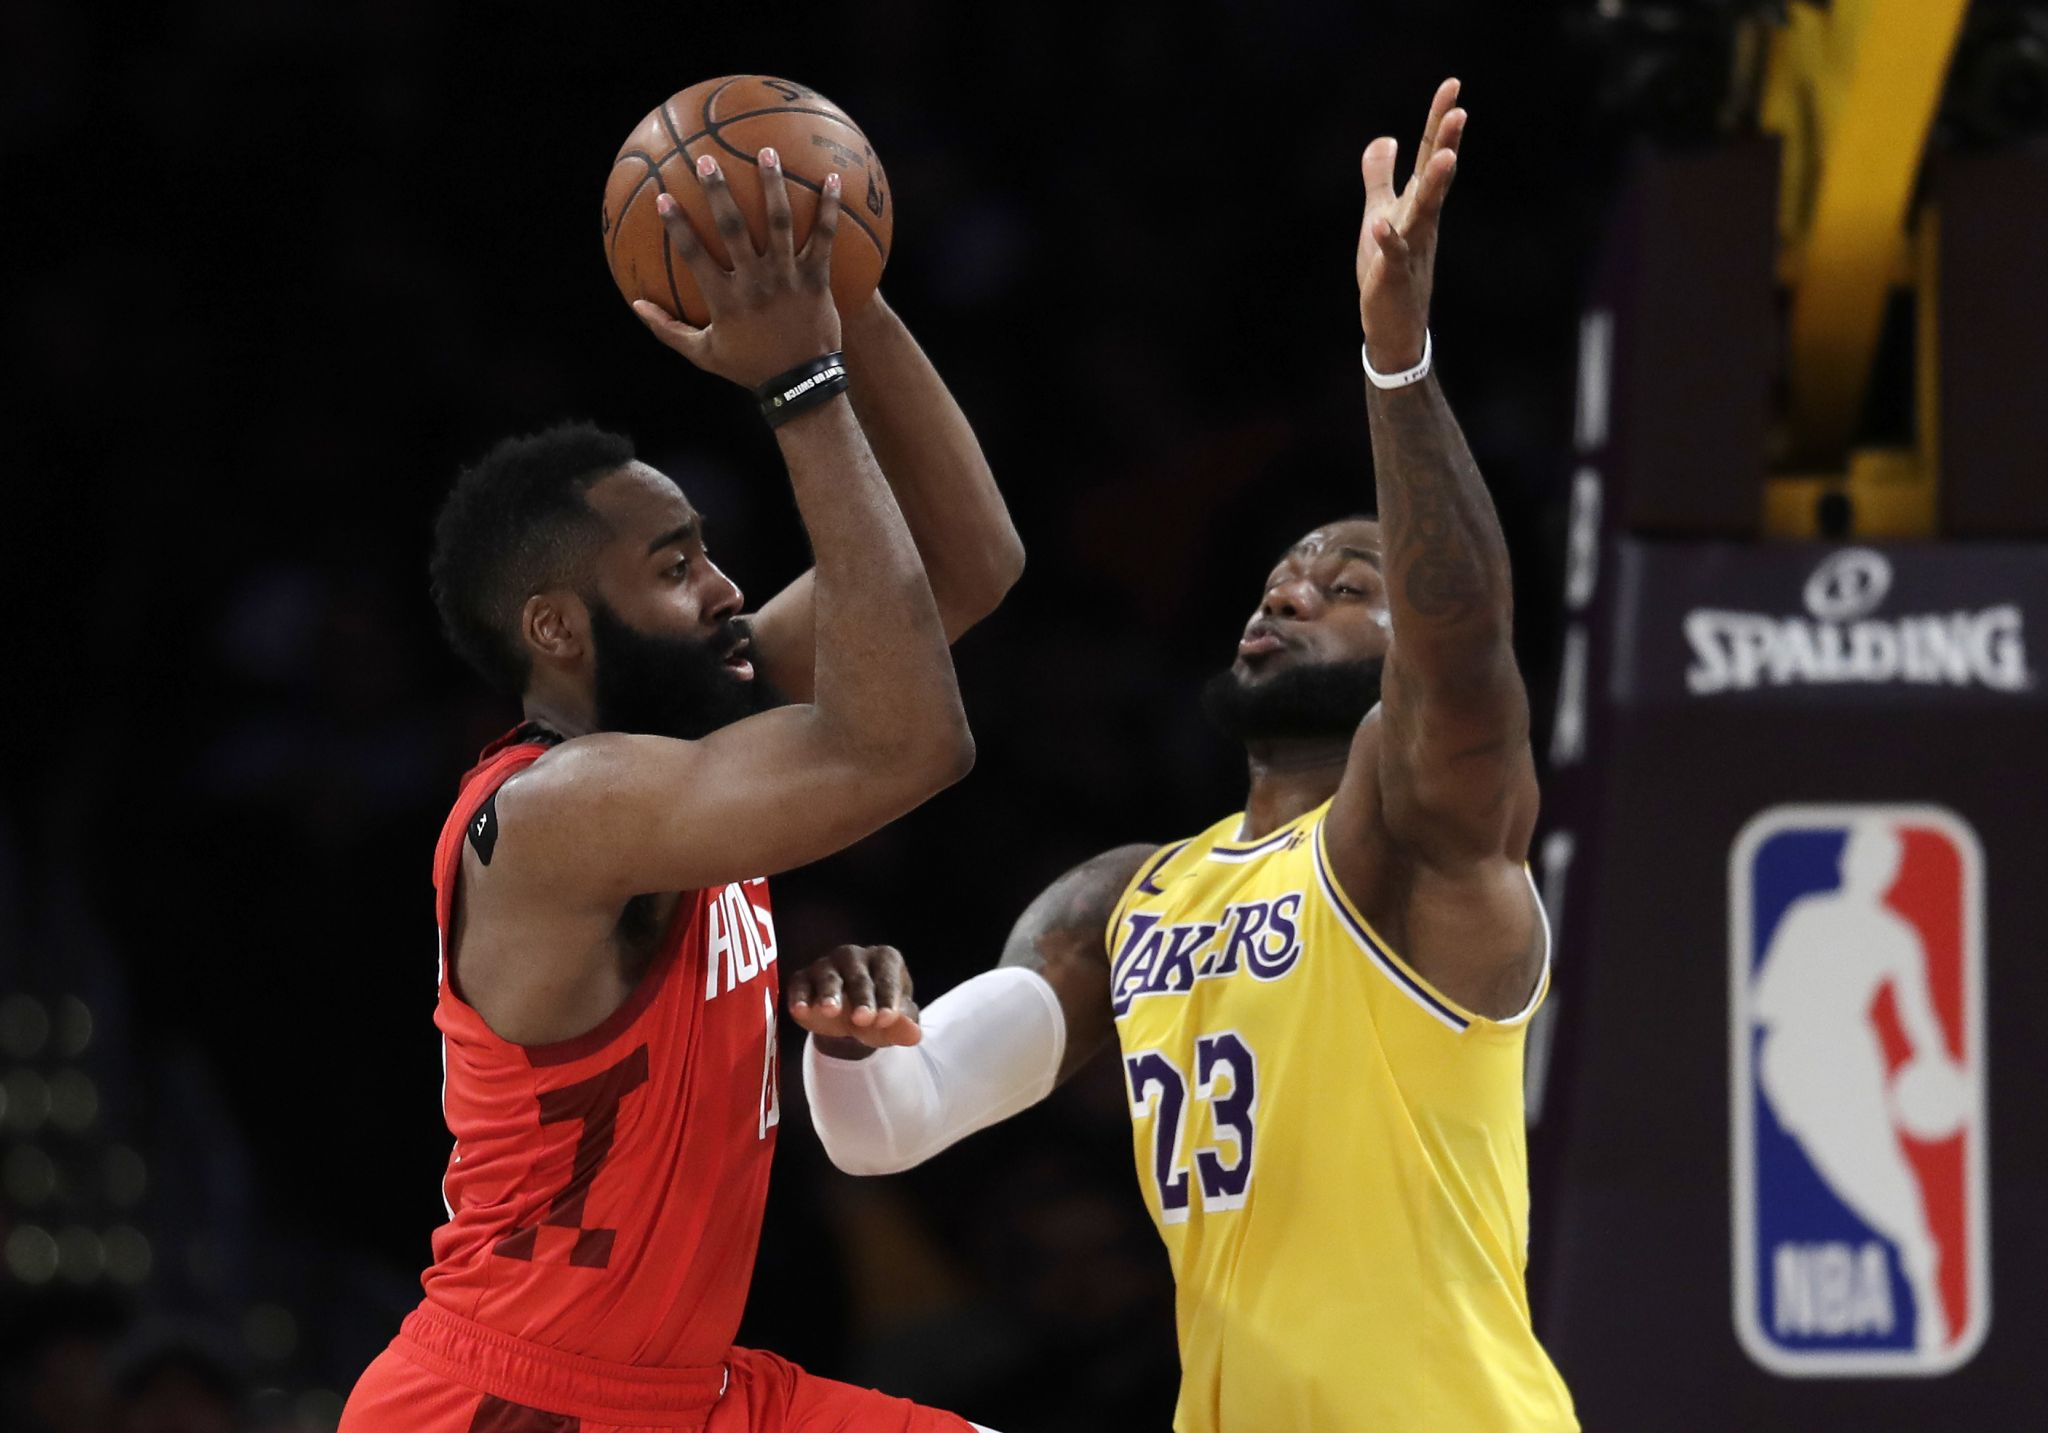 On TV/Radio: Jeff Van Gundy says Rockets-Lakers matchup much more than showdown